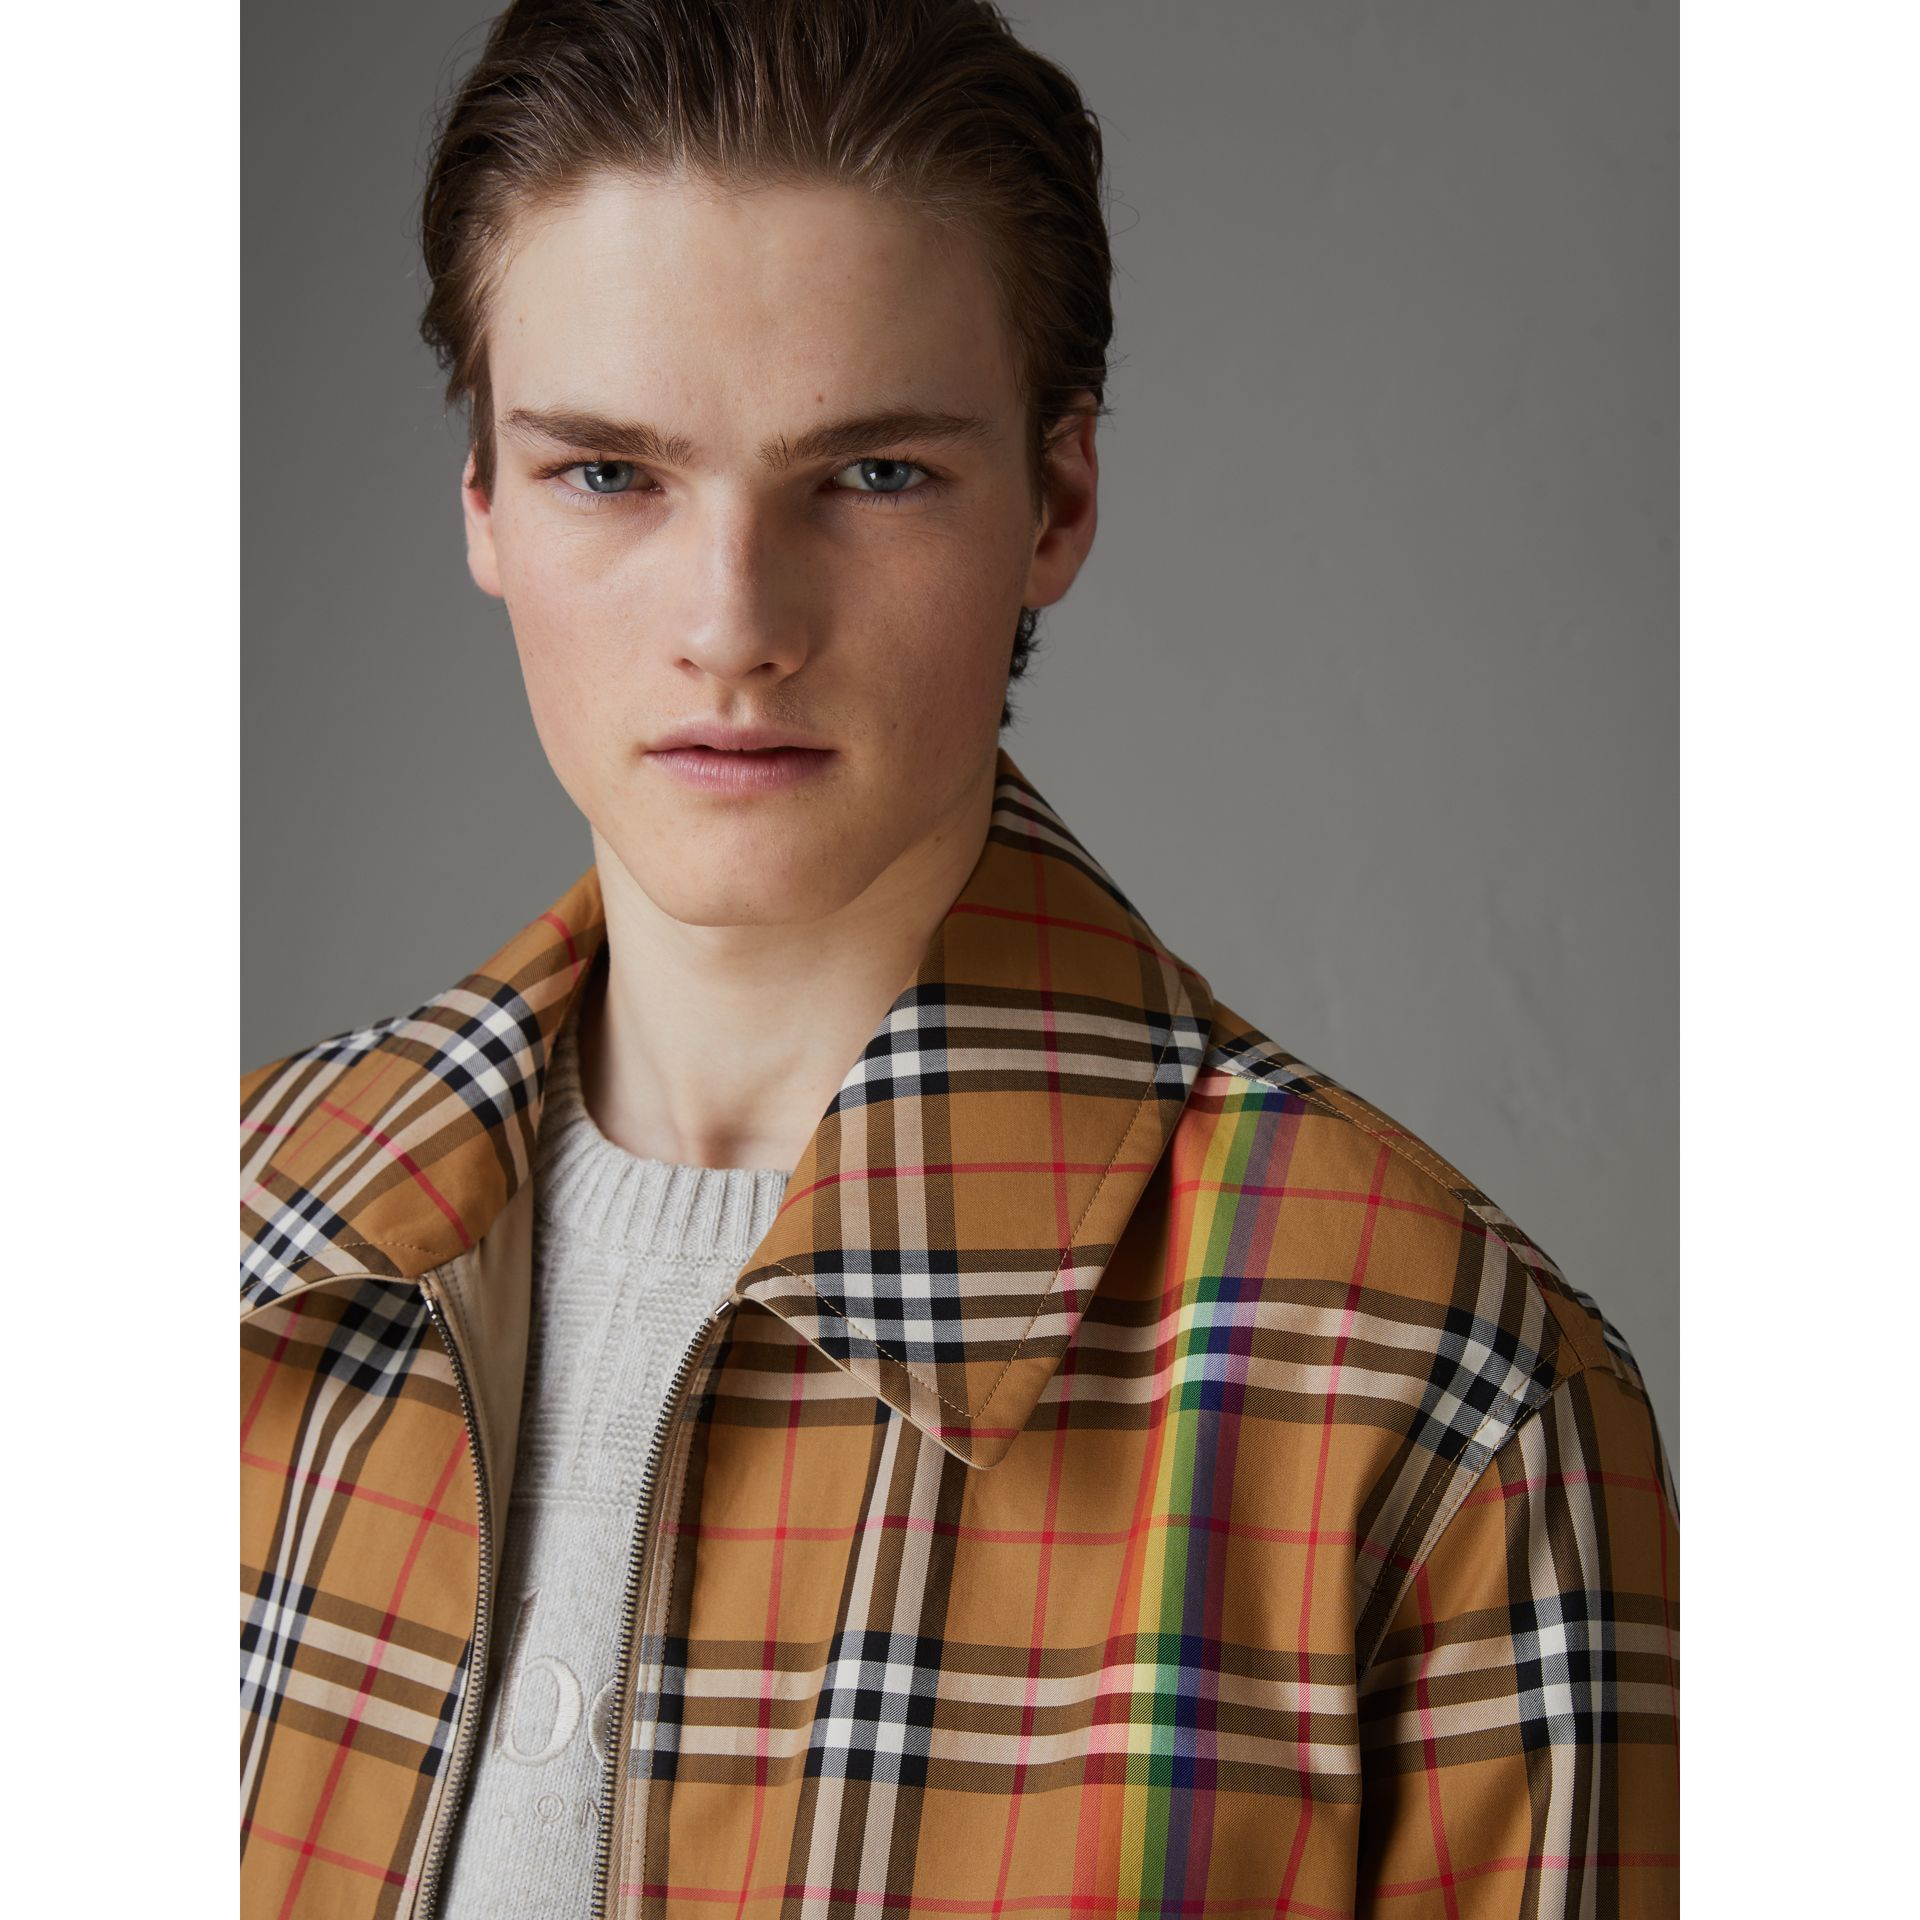 Veste Harrington à motif Rainbow Vintage check (Jaune Antique/arc-en-ciel) - Homme | Burberry - photo de la galerie 1